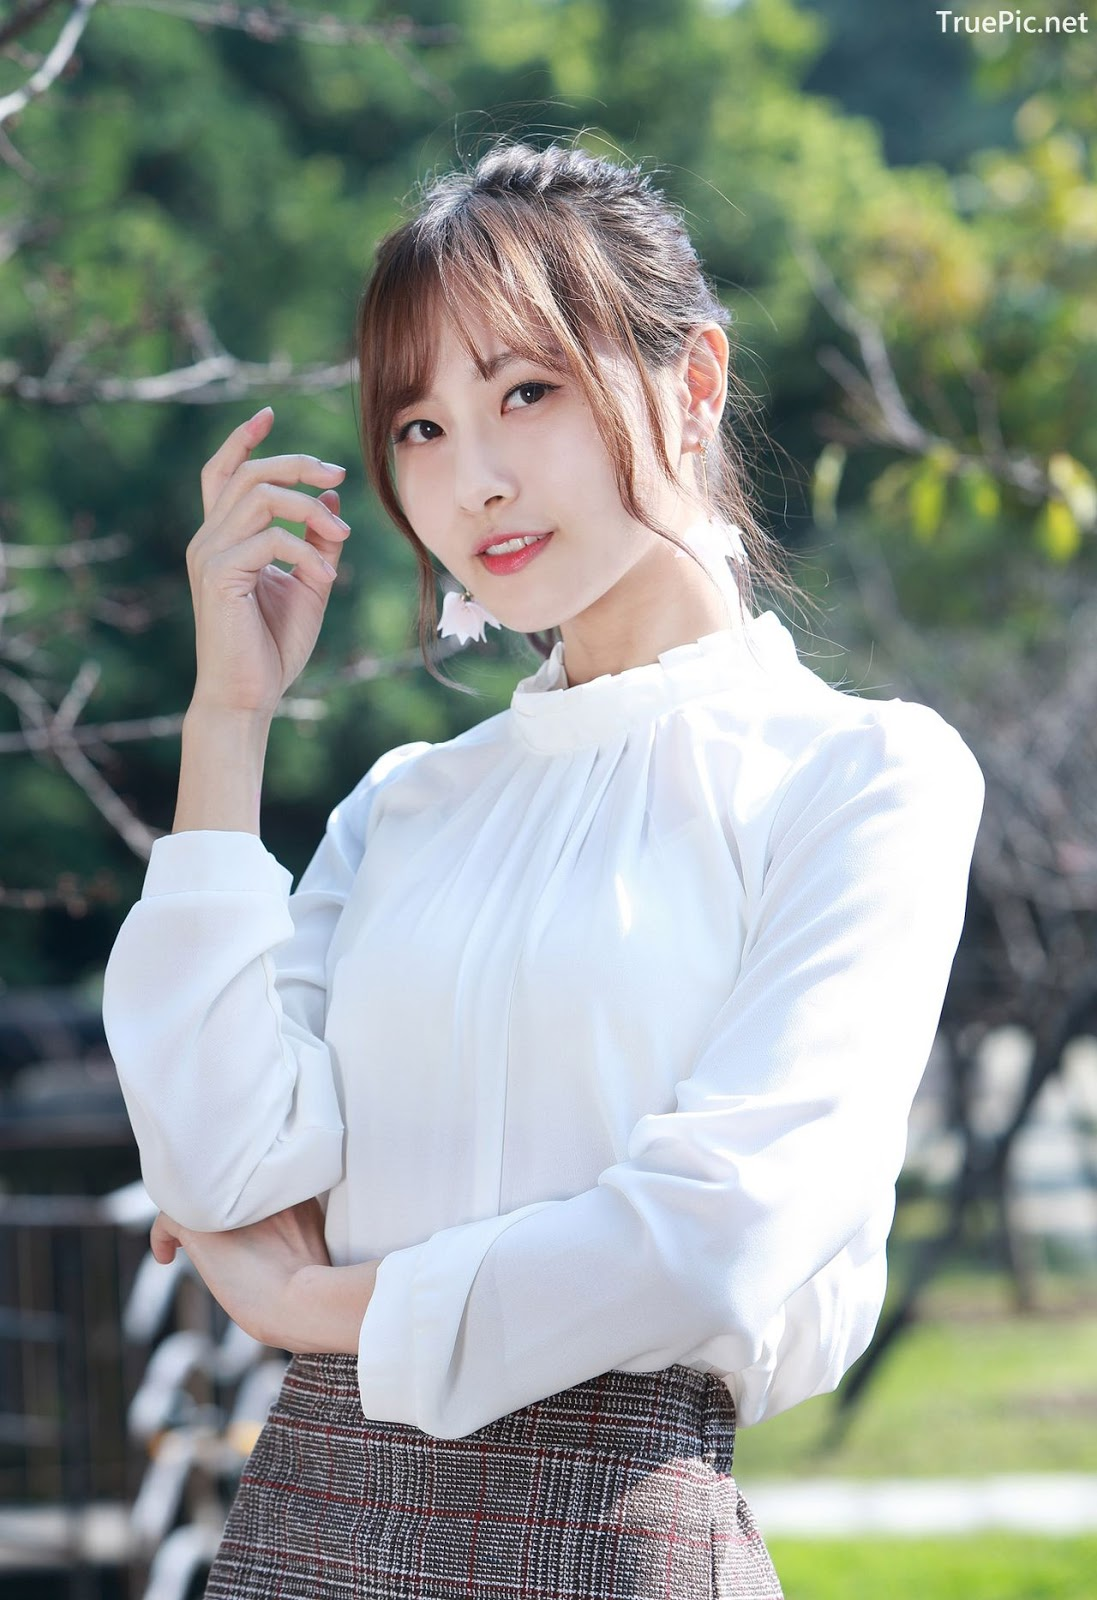 Image-Taiwanese-Model-郭思敏-Pure-And-Gorgeous-Girl-In-Office-Uniform-TruePic.net- Picture-6